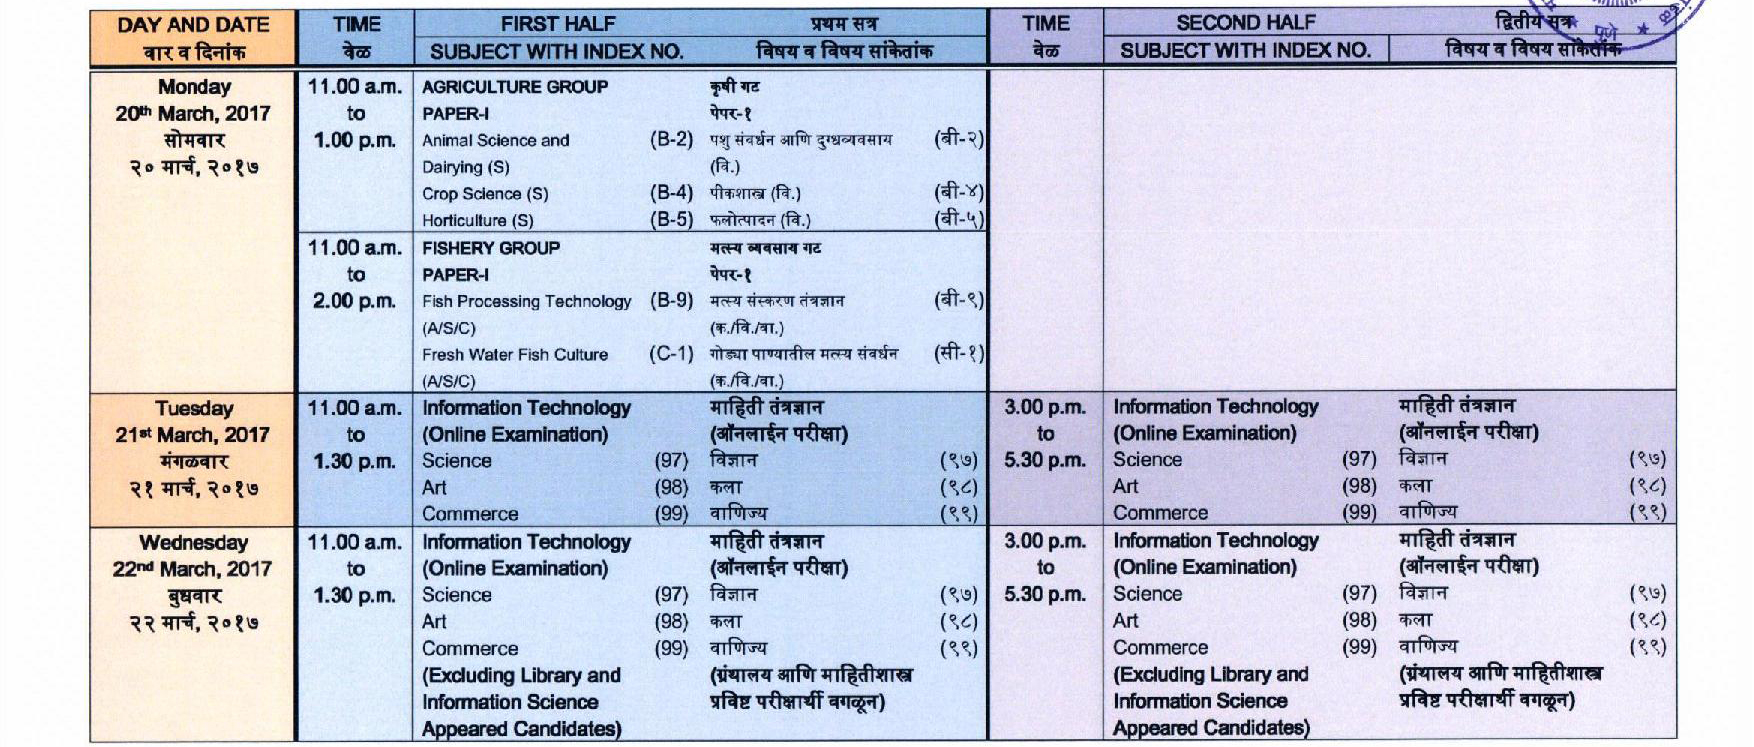 Time table Of 80 Board exam 2019 rbse class 10